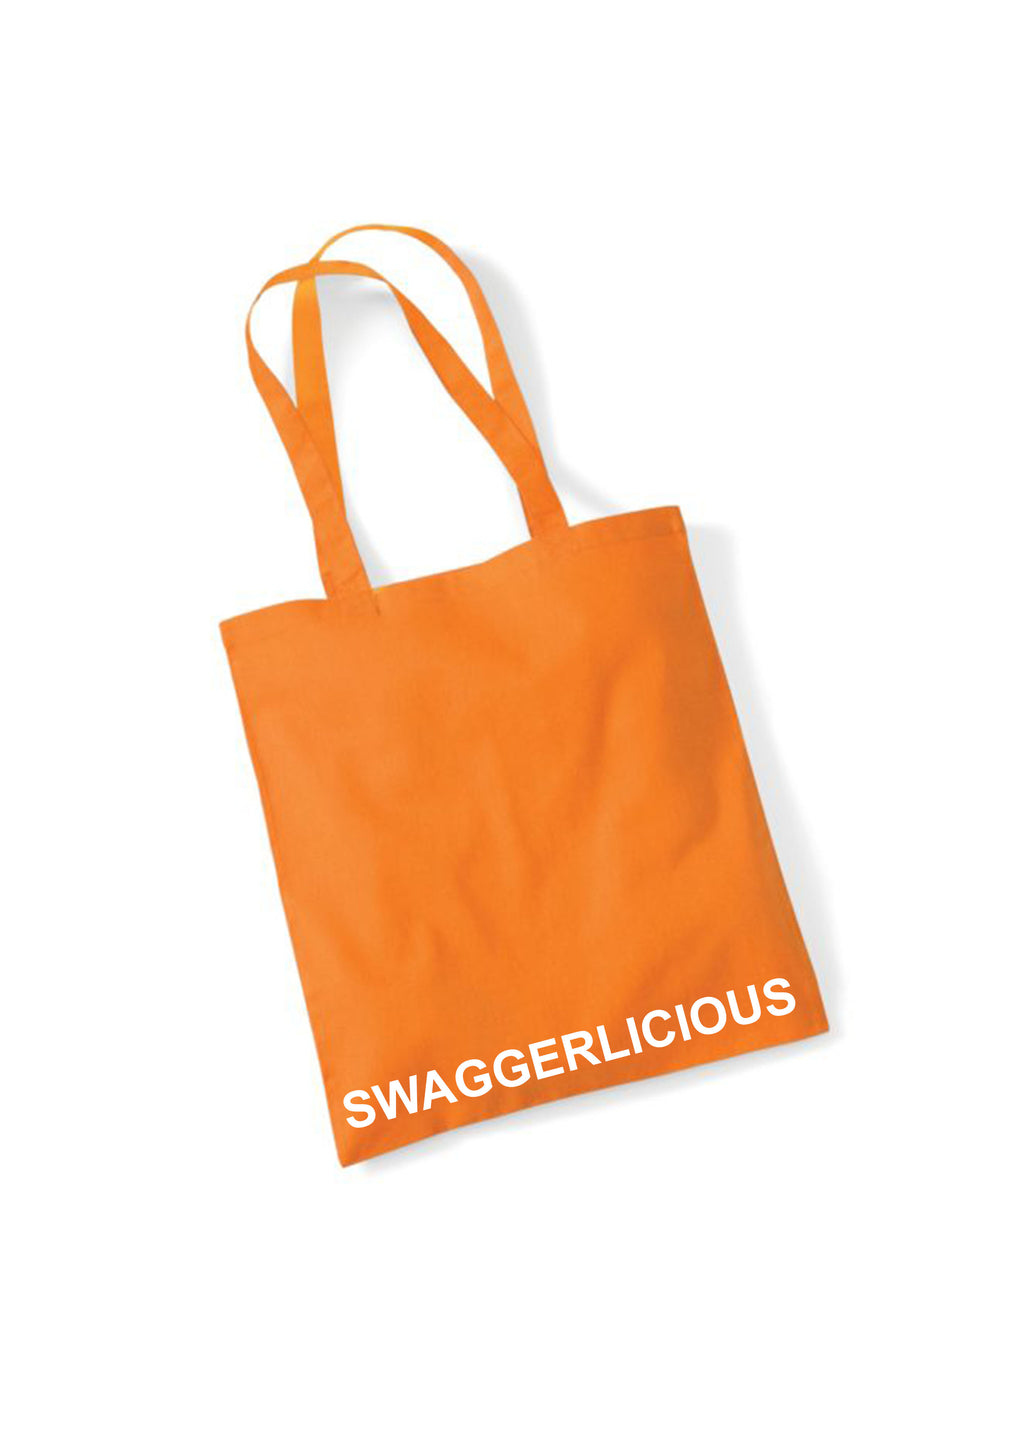 ORANGE SWAGGERLICIOUS TOTE BAG - swaggerlicious-clothing.com